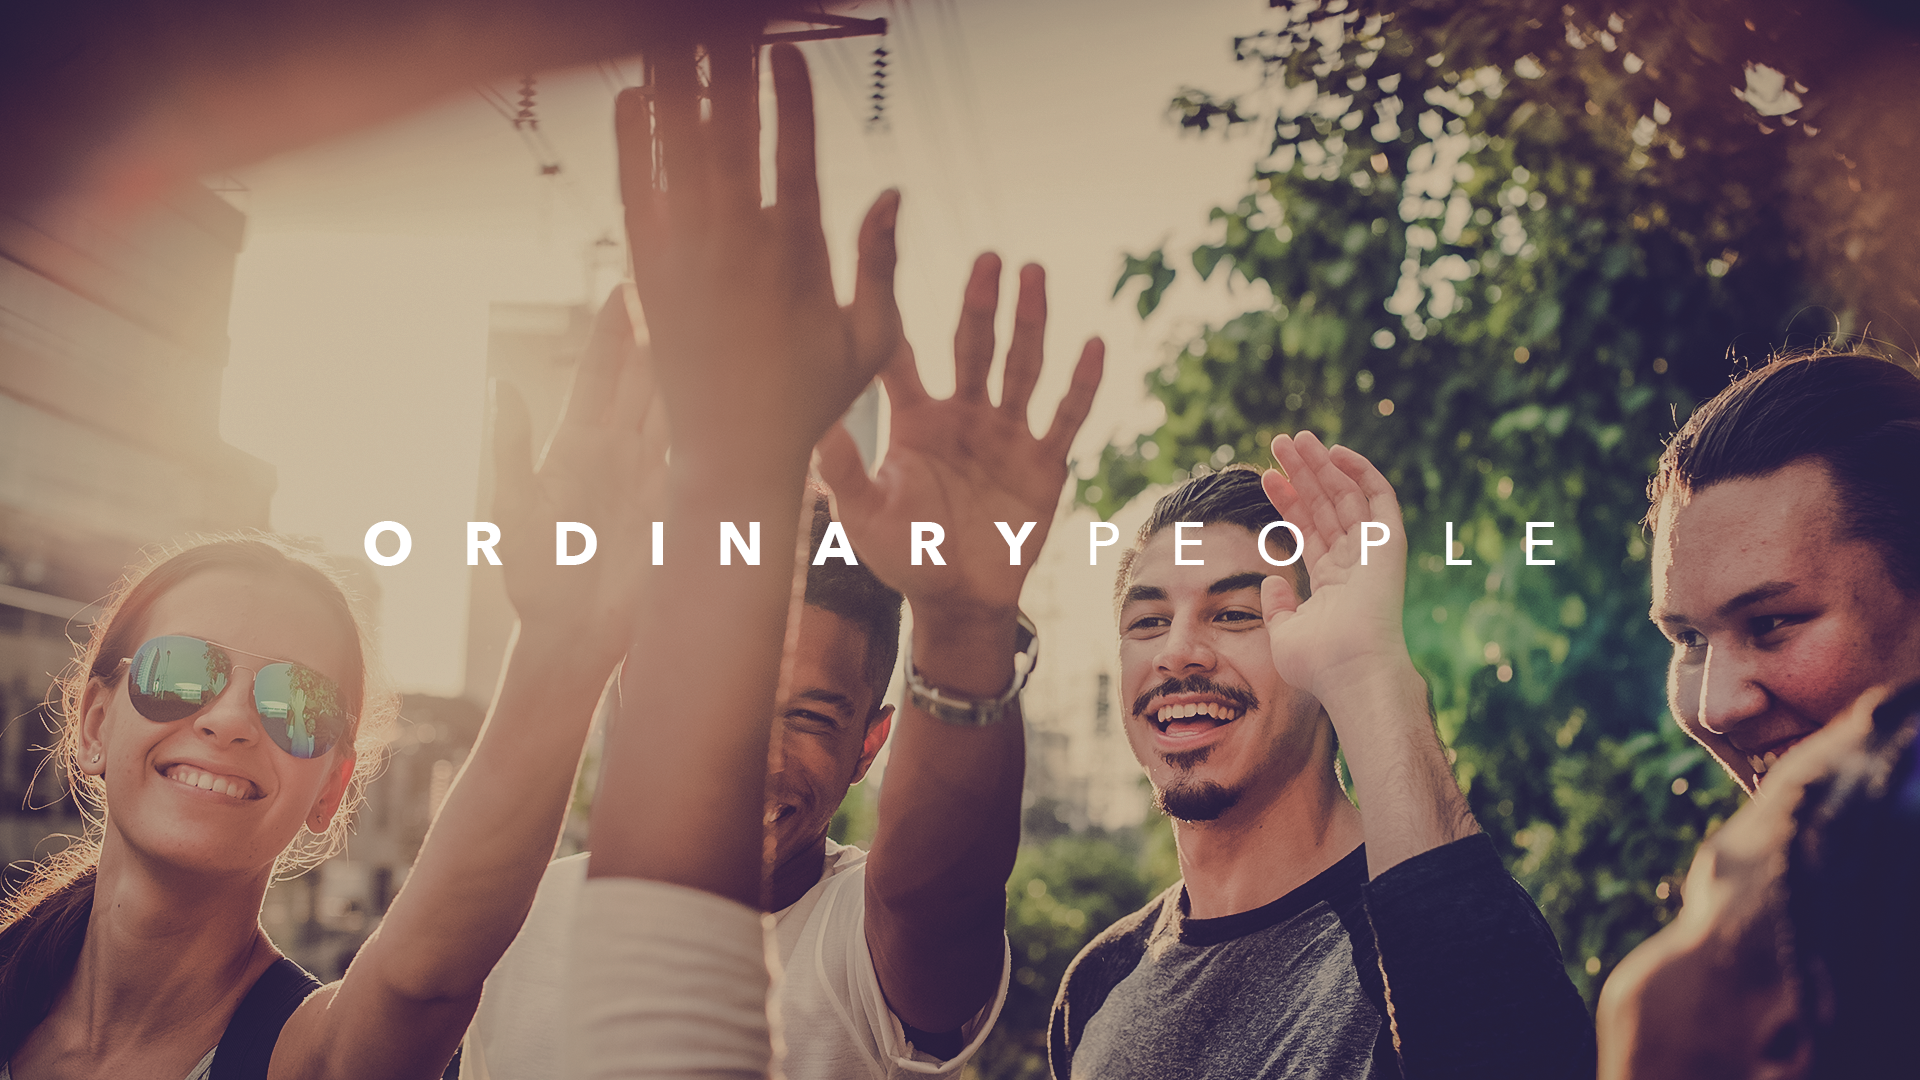 Ordinary-PeopleArtboard-1 copy.png